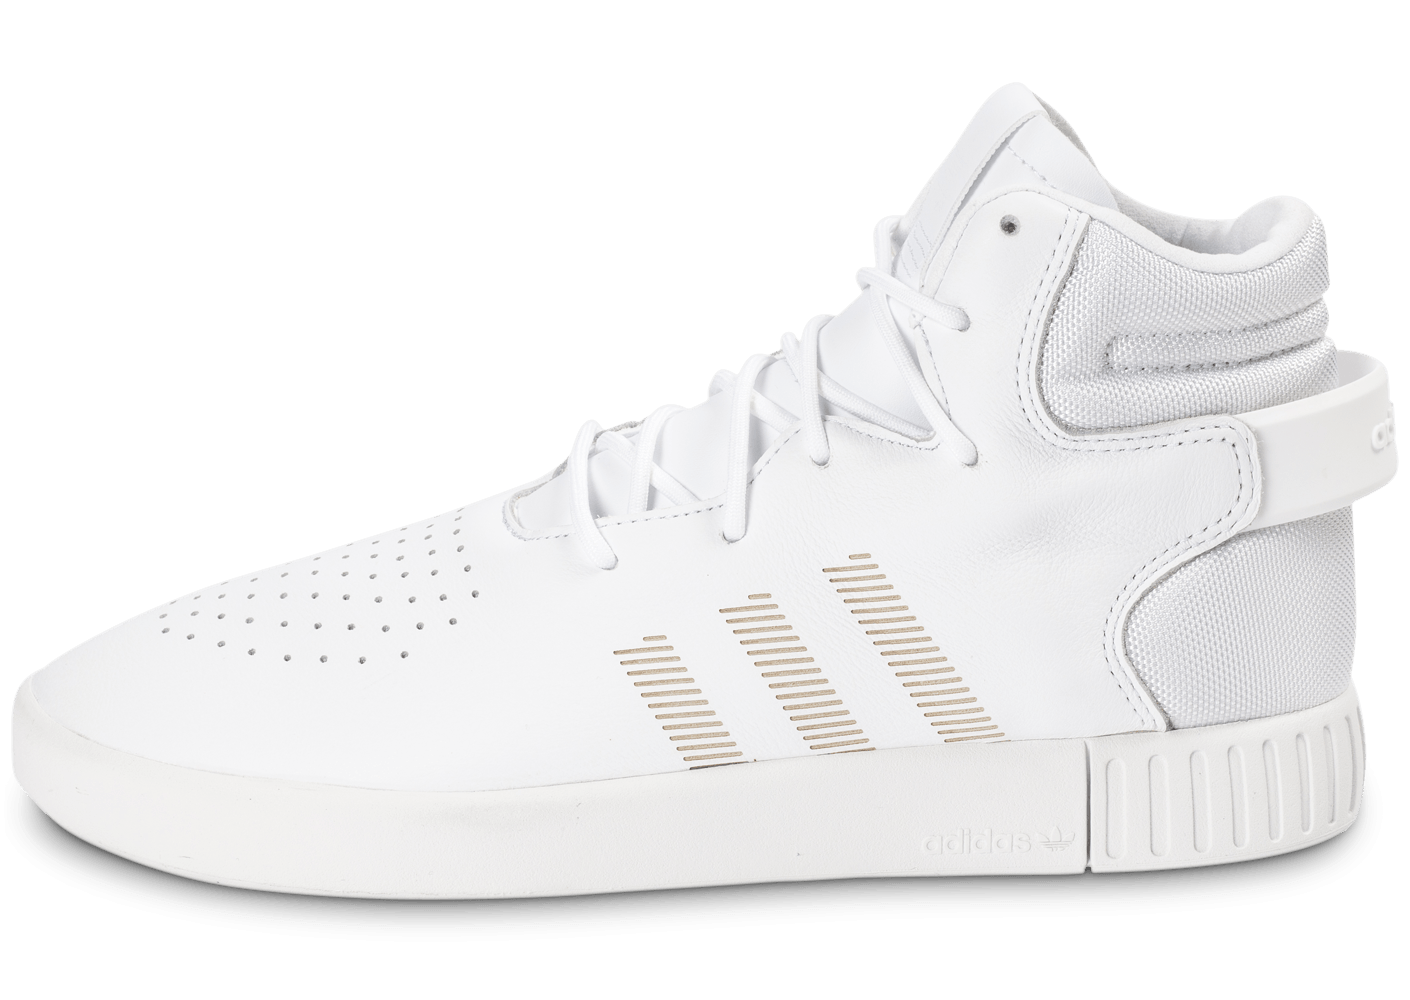 Baskets Invader Tubular Chausport Adidas Chaussures Blanche